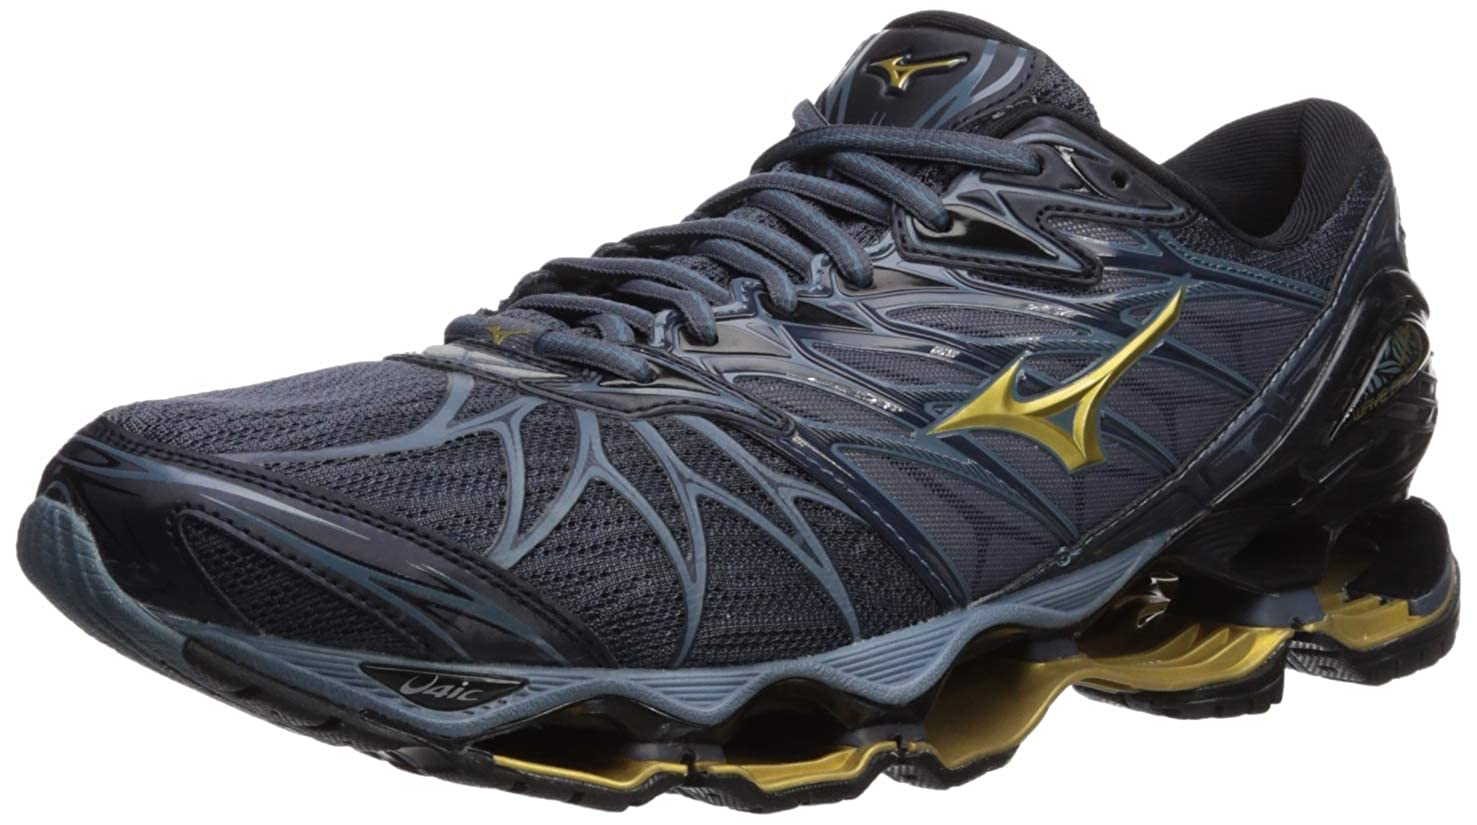 sale retailer 59885 297a5 Mizuno Wave Prophecy 7 Men's Running Shoes